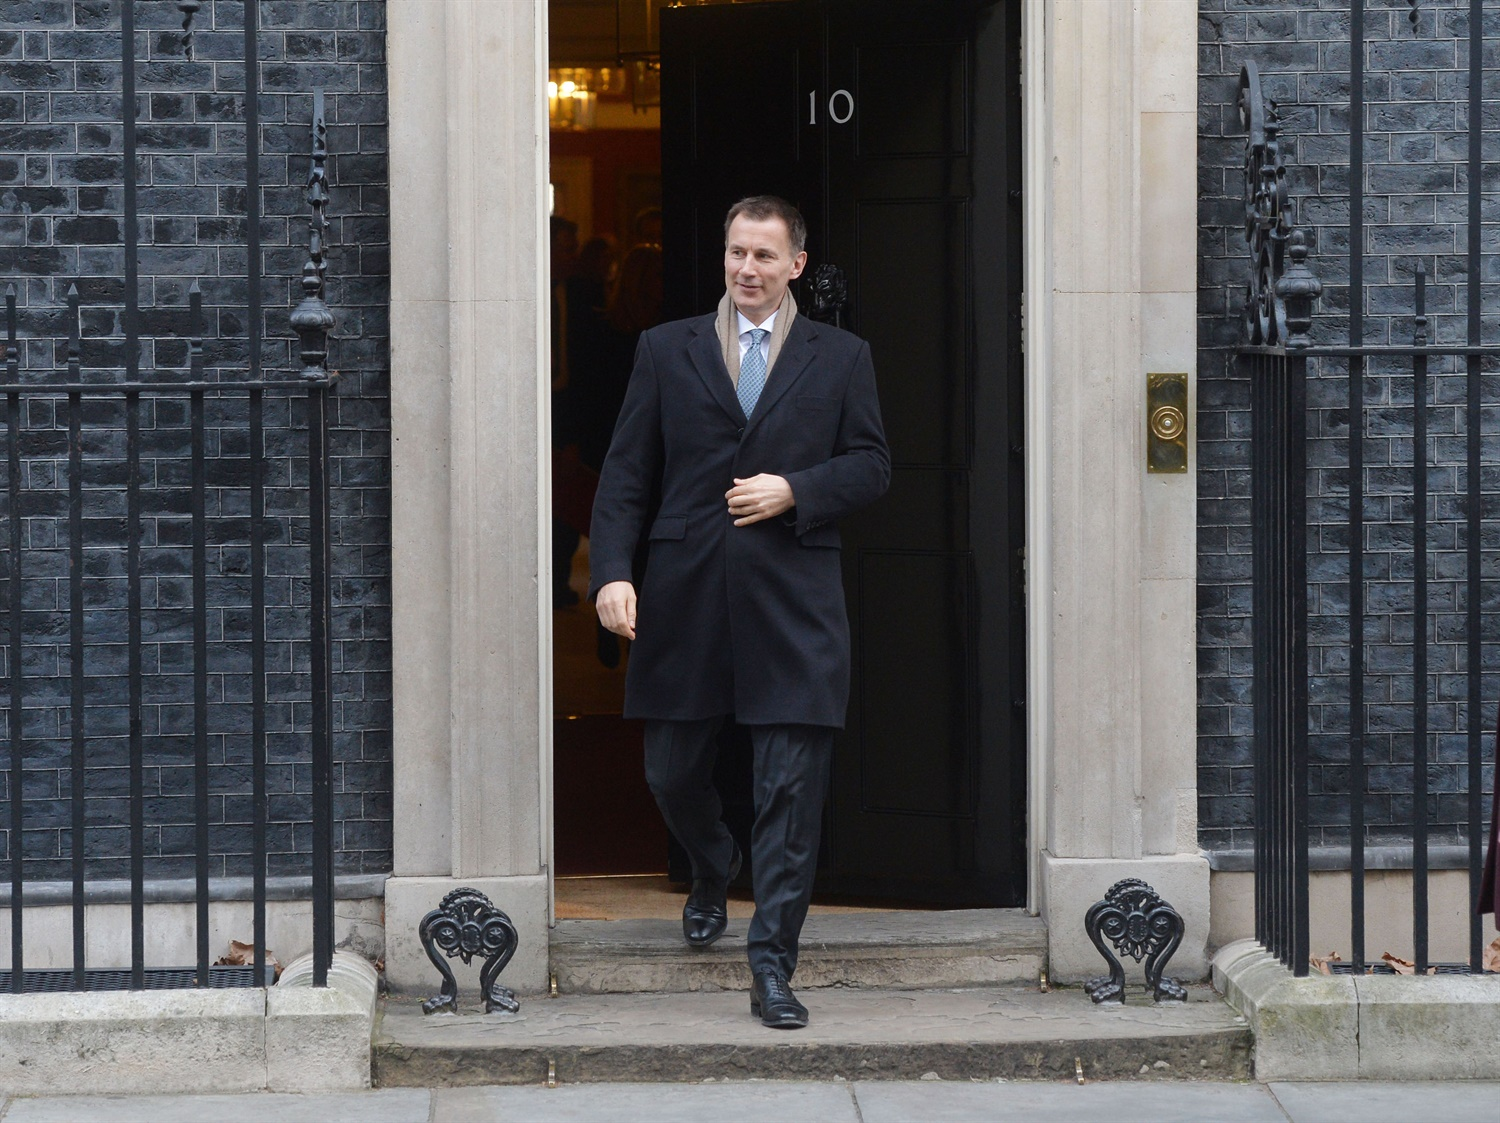 Hunt under investigation over failure to declare luxury flats